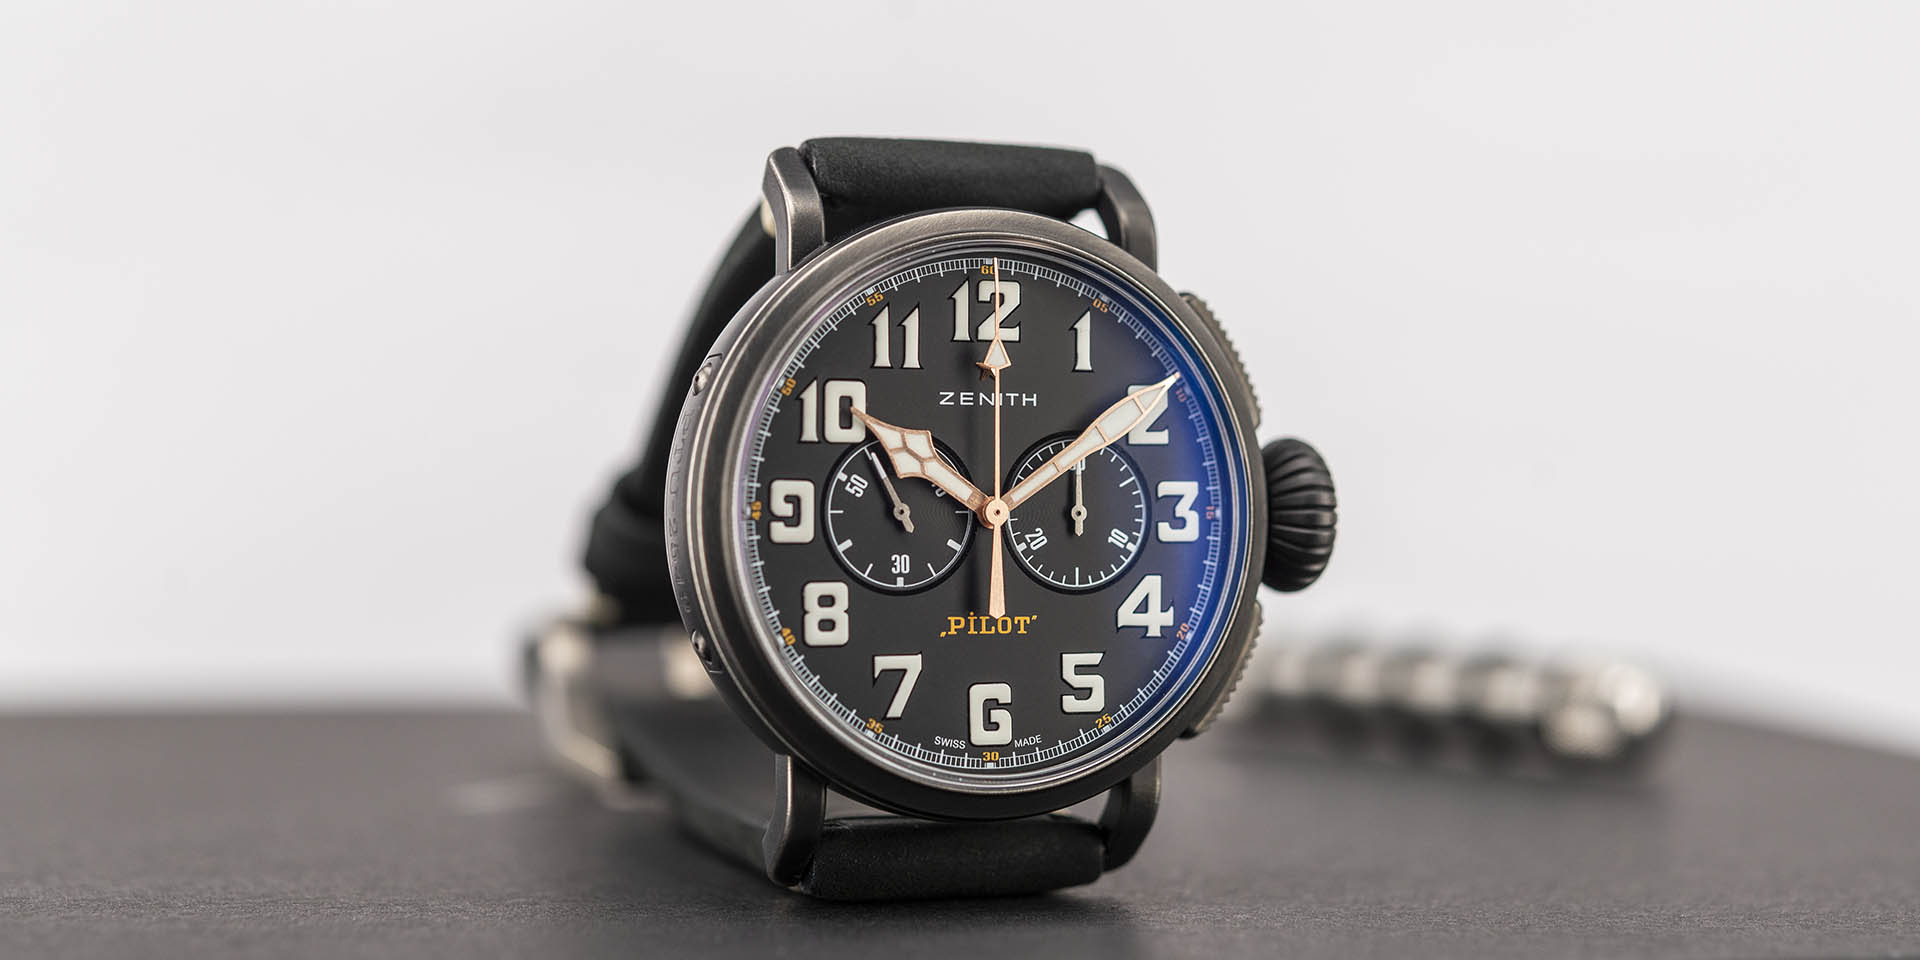 11-2432-4069-21-c900-zenith-pilot-type-20-chronograph-ton-up-1-.jpg